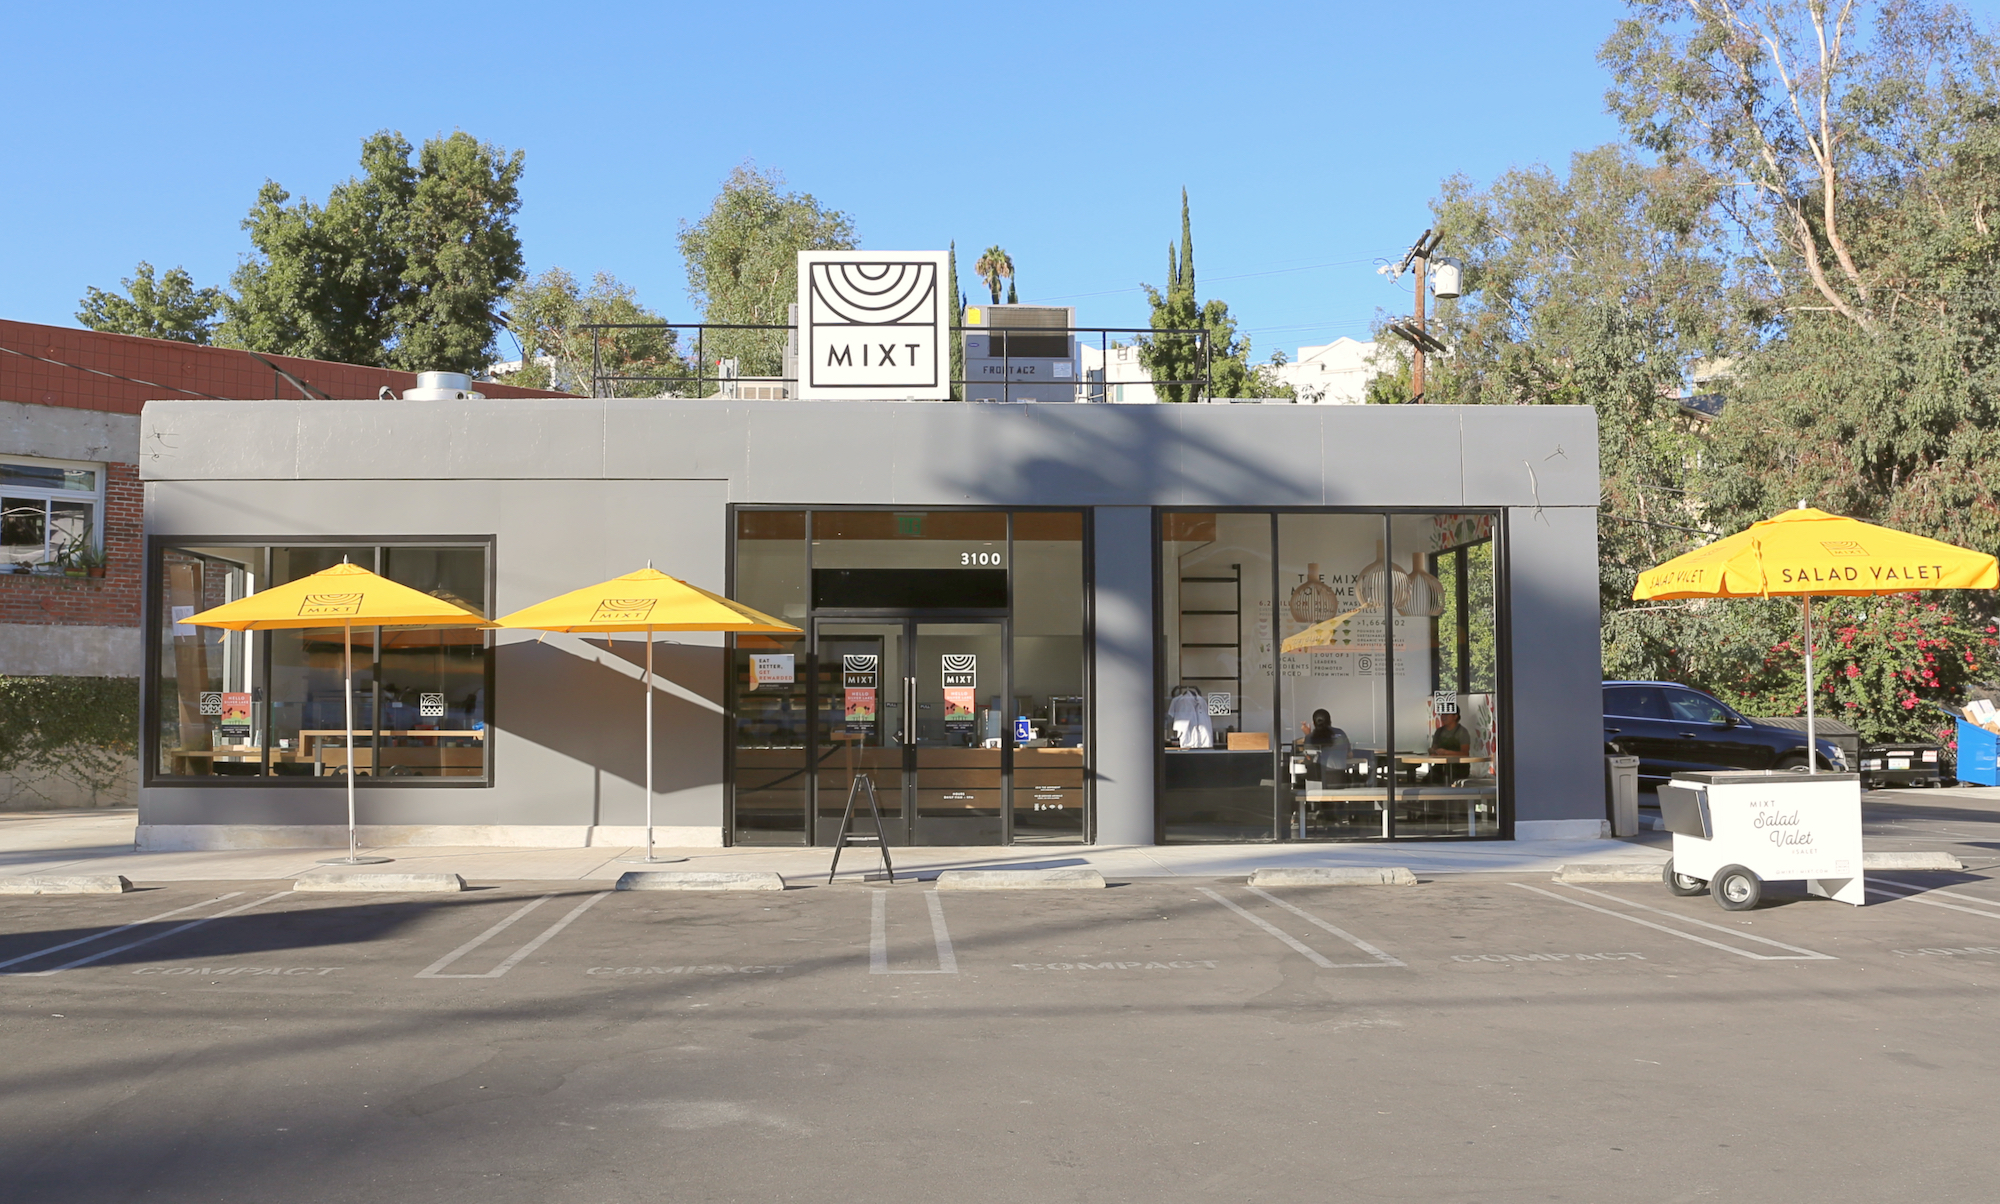 A finished restaurant space with yellow sun shades out front.